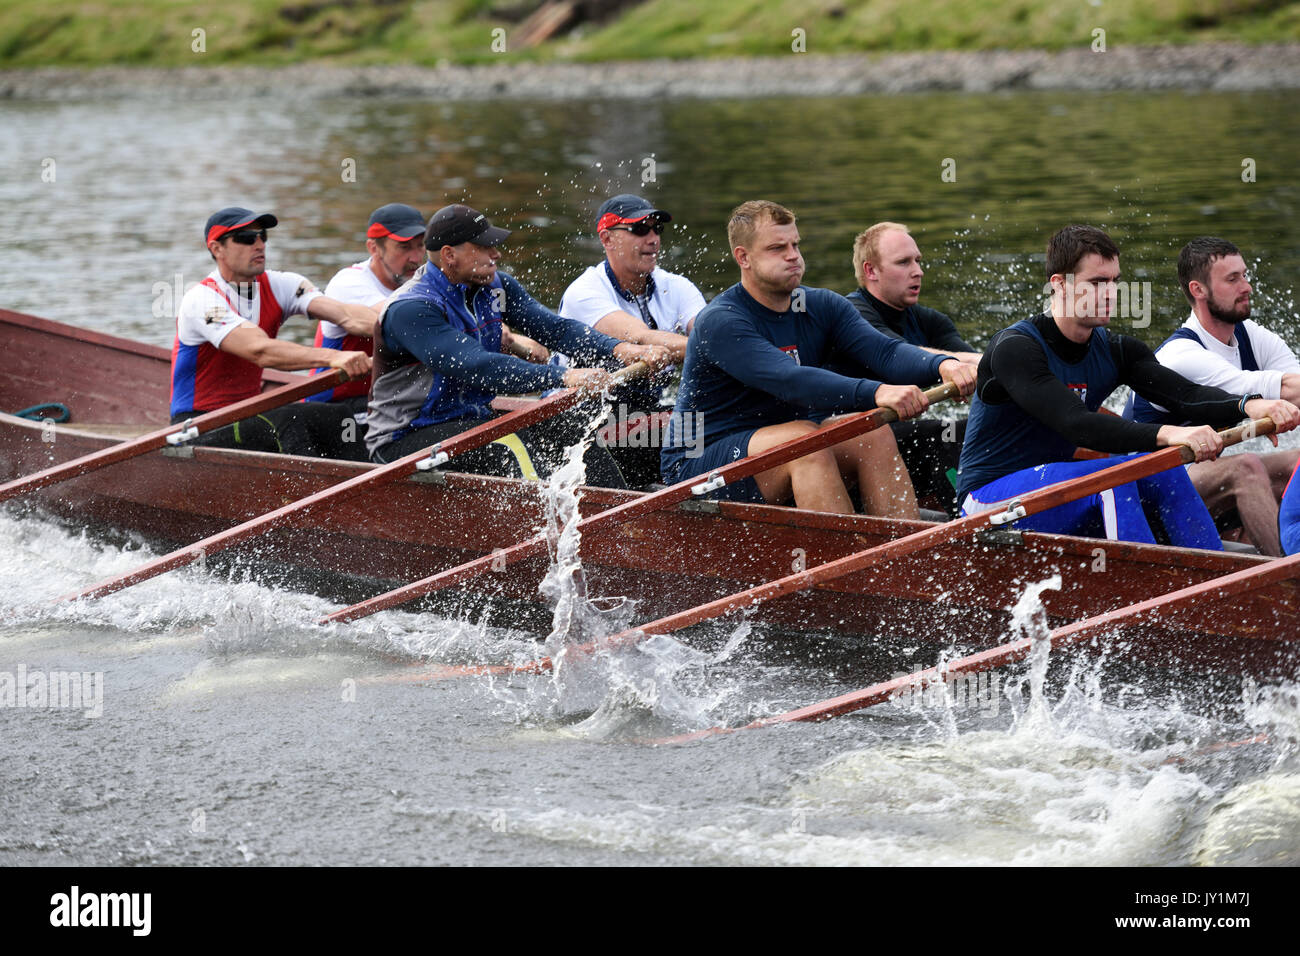 St. Petersburg, Russia - June 12, 2015: Competitions of Viking boats during the Golden Blades Regatta. This kind of competitions make the race accessi - Stock Image